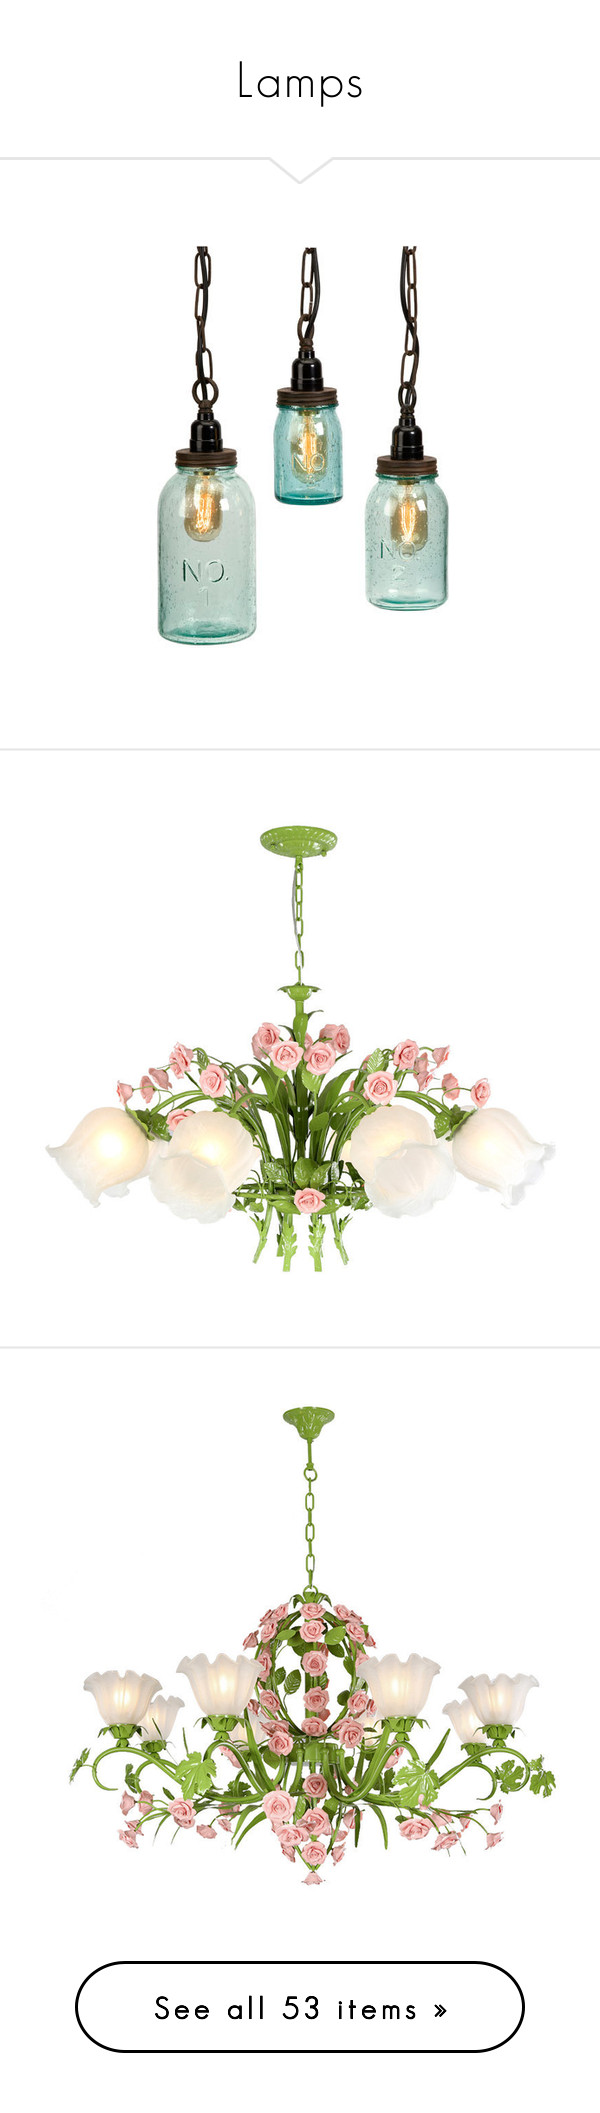 Lamps by susy v liked on polyvore featuring home lighting ceiling lights green pendant light plug in pendant light plug in ceiling lamp plug in pendant lights plug in hanging lamps white flower chandelier arubaitofo Image collections